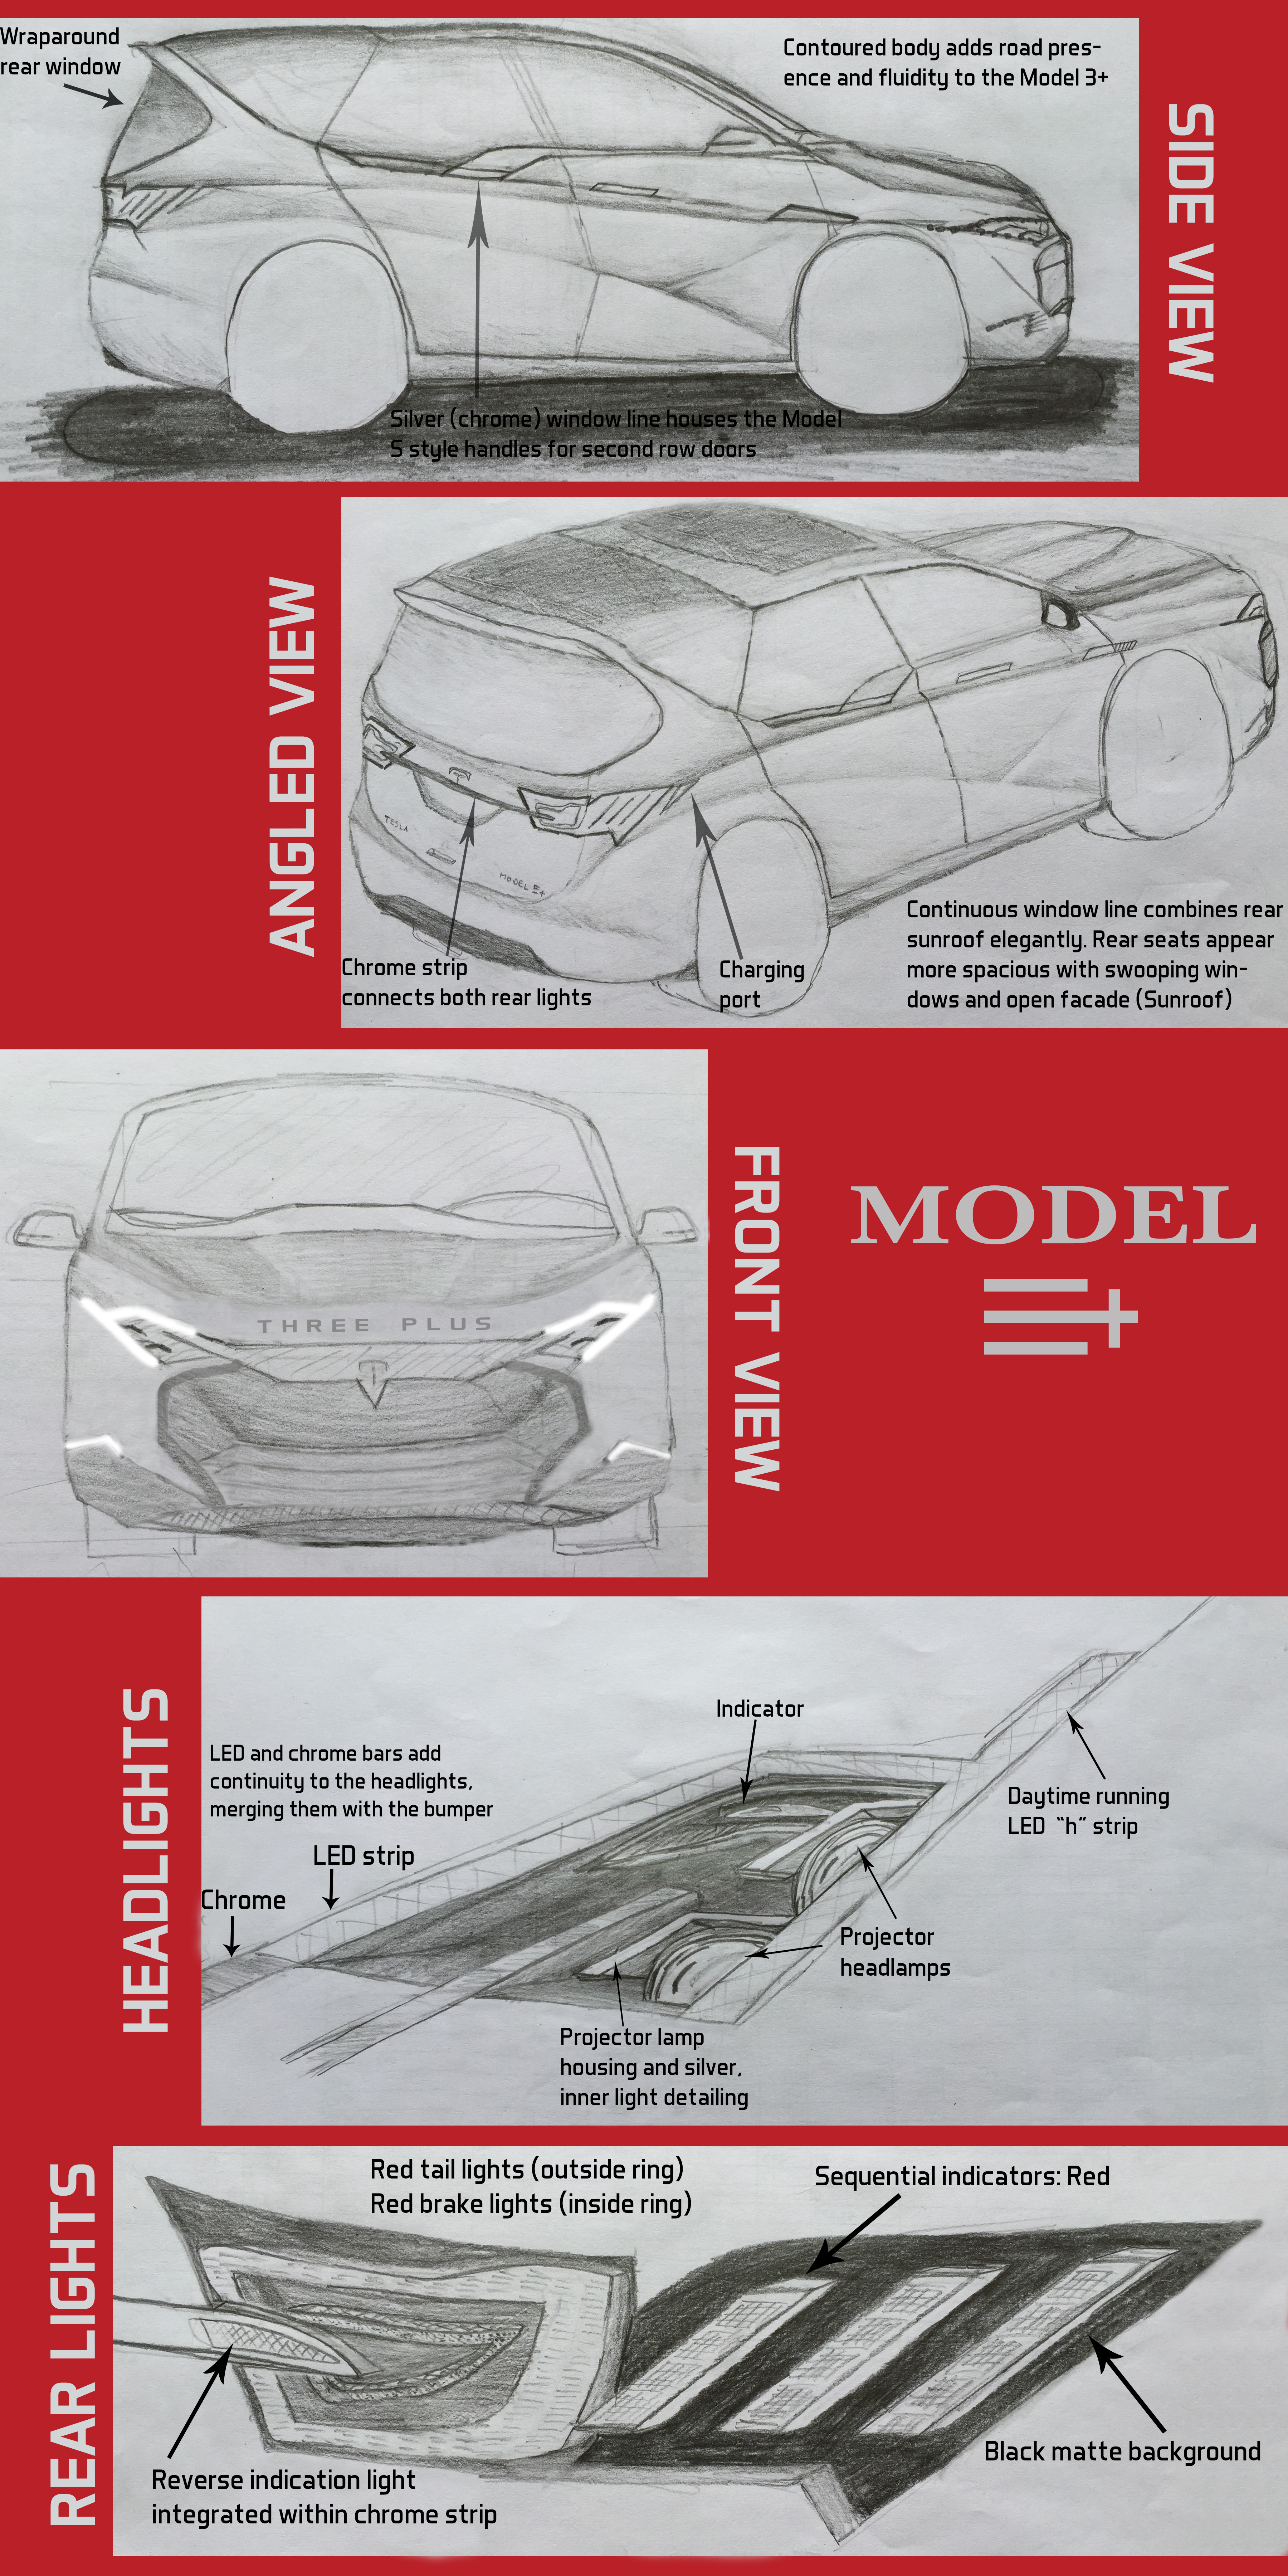 Tesla Model 3 Concept Anants World Motor Design Diagram Pics